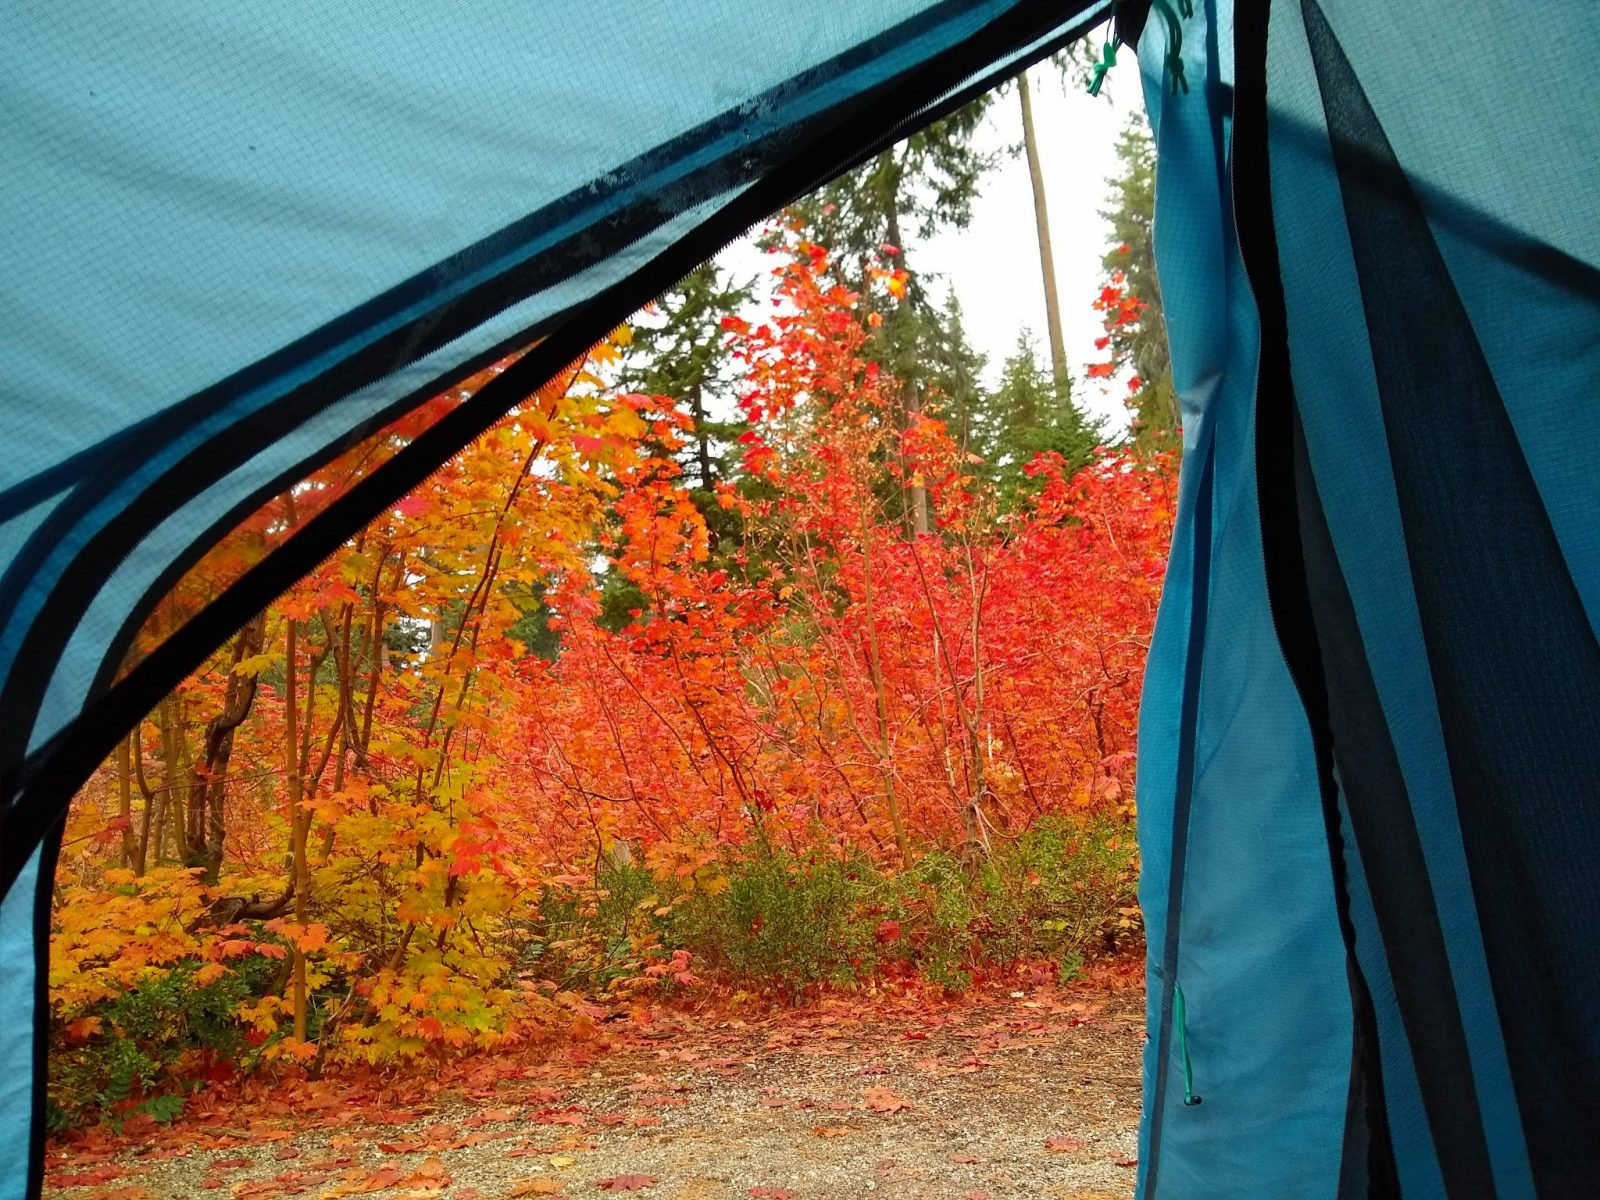 A view through the open door of a blue tent in the Lake wenatchee campground. There are green trees and bright orange and red vine maples outside the door.